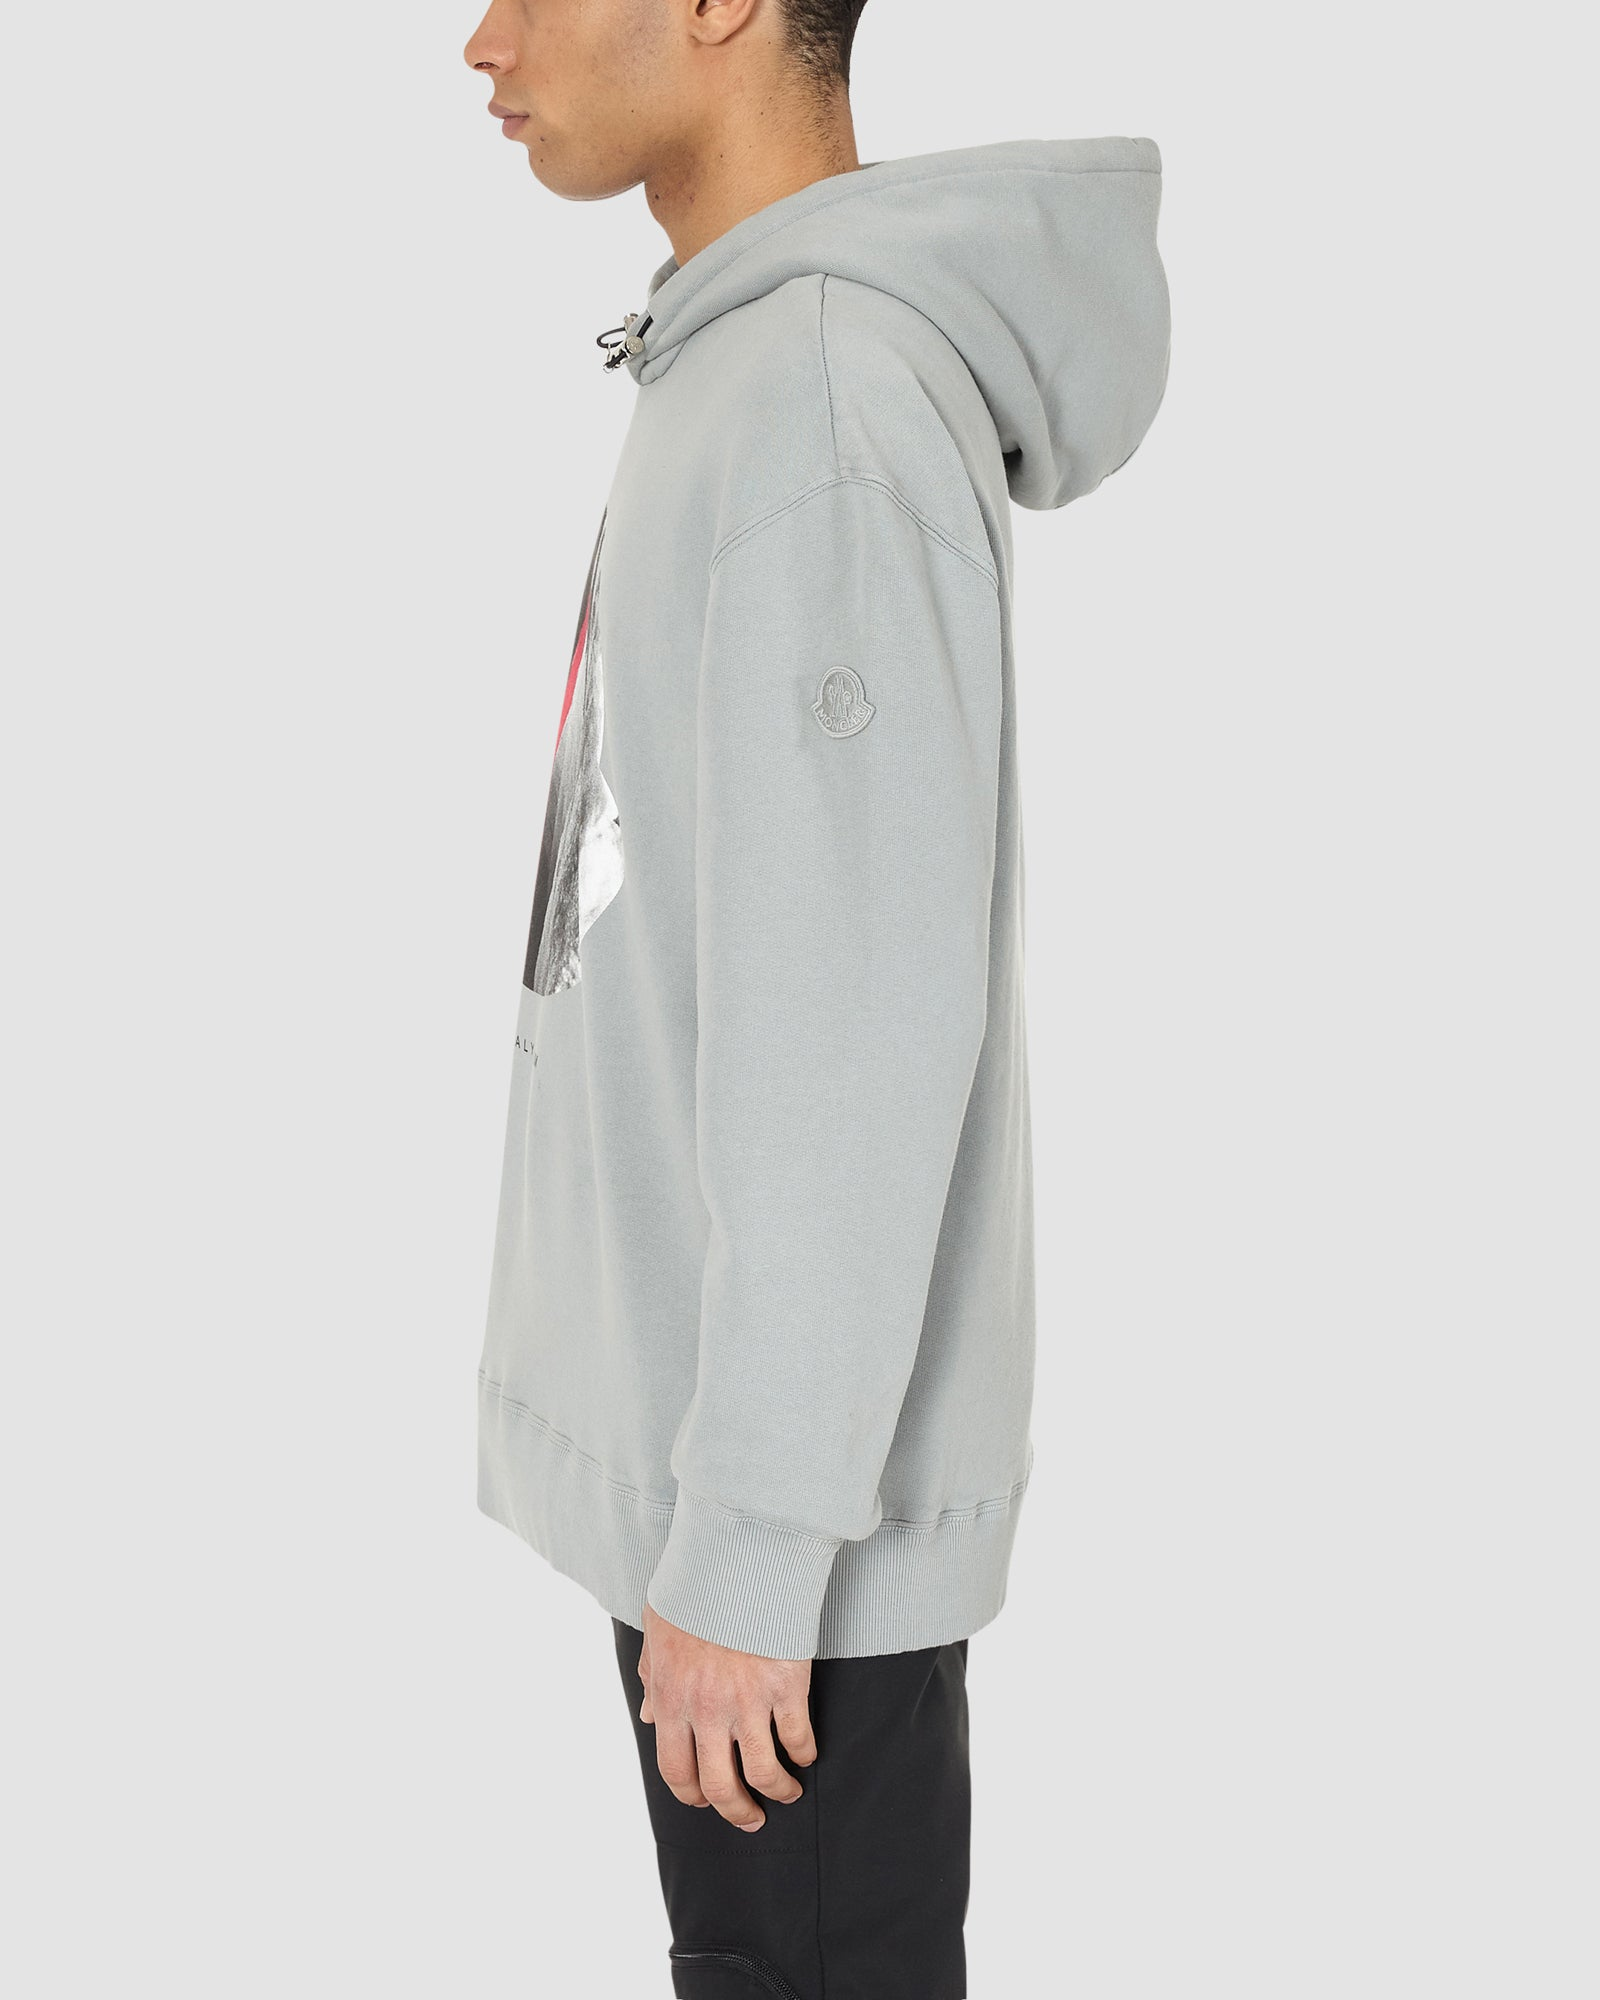 1017 ALYX 9SM | MONCLER HOODED JUMPER | T-Shirt | Google Shopping, Grey, Man, Moncler, S20, T-Shirts, UNISEX, WASHED GREY